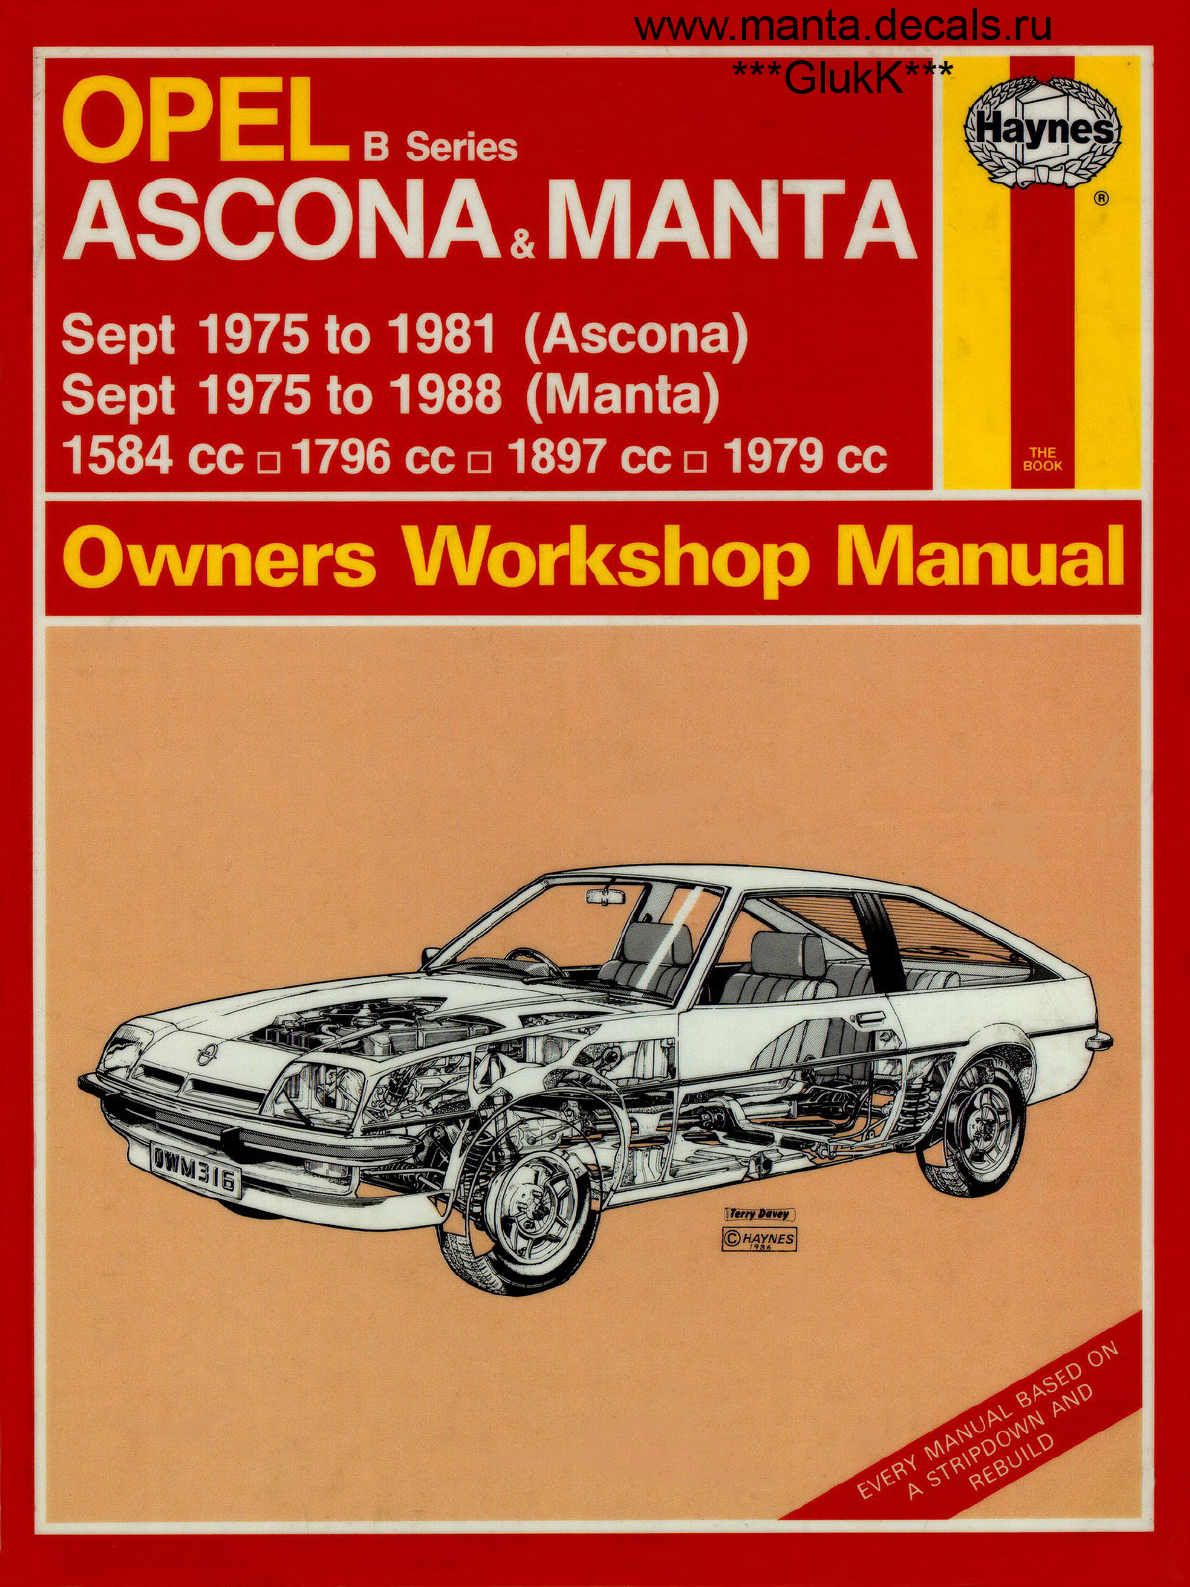 See our other Opel Manta Manuals: Opel Manta 1973 Workshop Manual